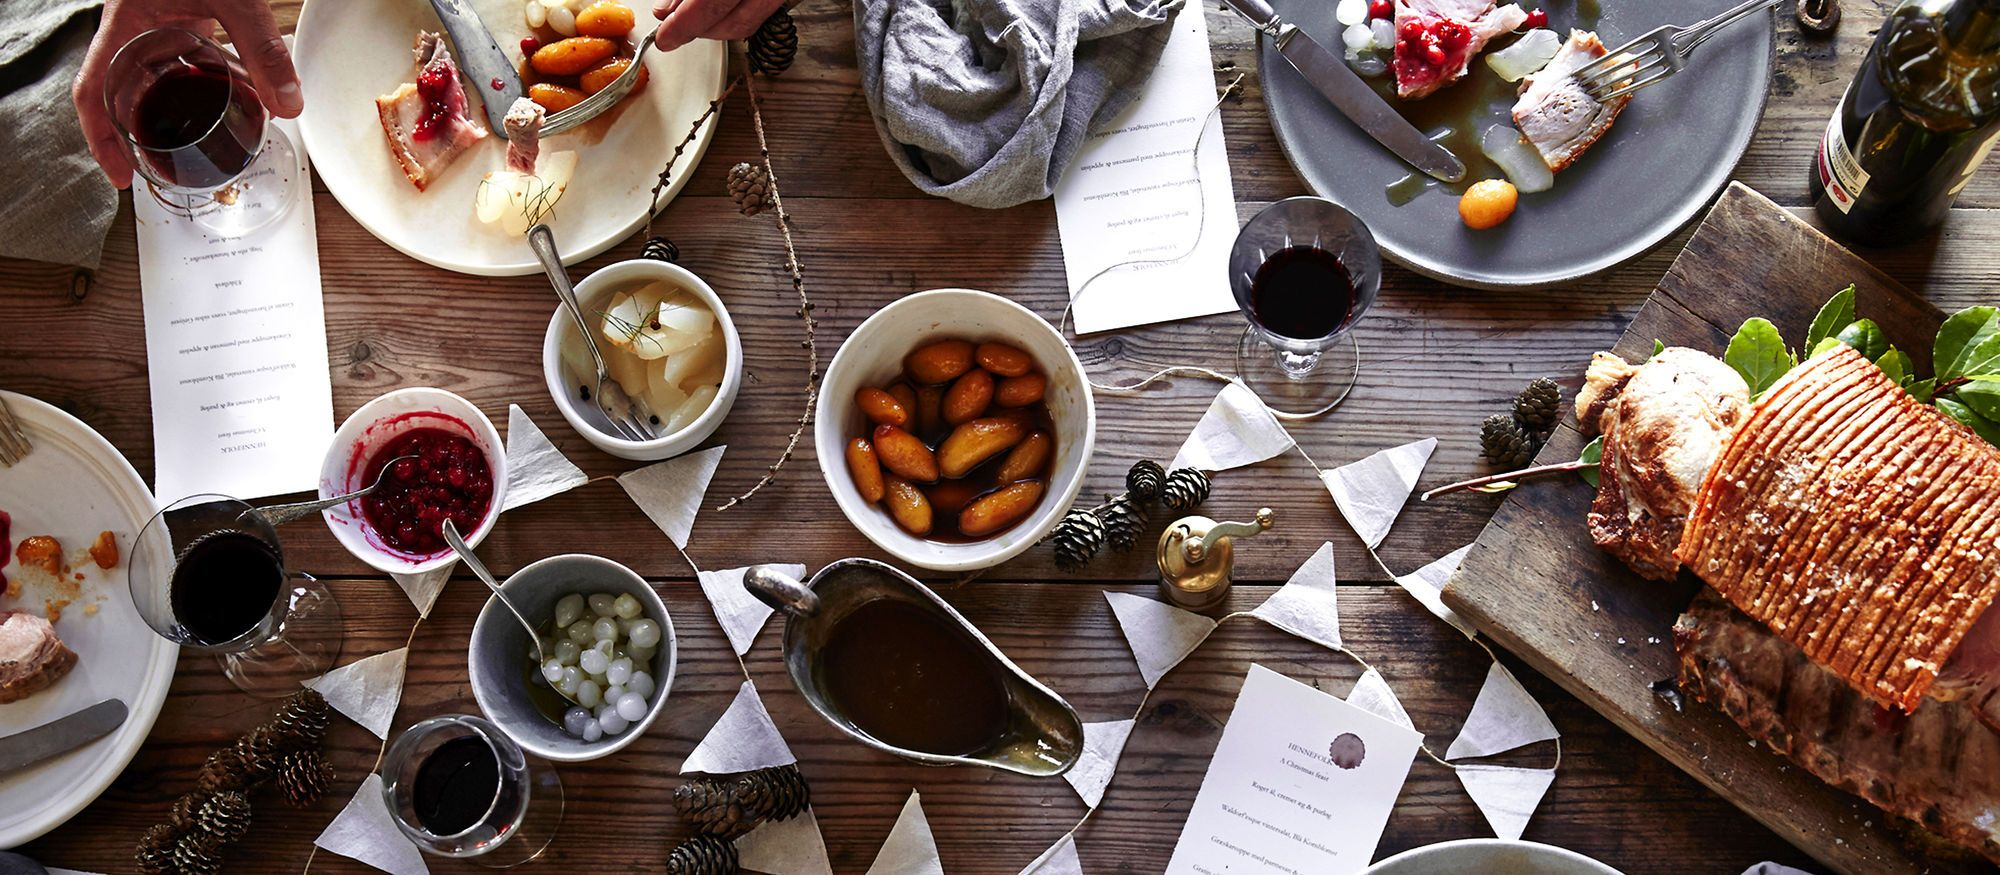 The ultimate guide to holiday recipes appetizers and desserts the ultimate guide to holiday recipes appetizers and desserts forumfinder Choice Image